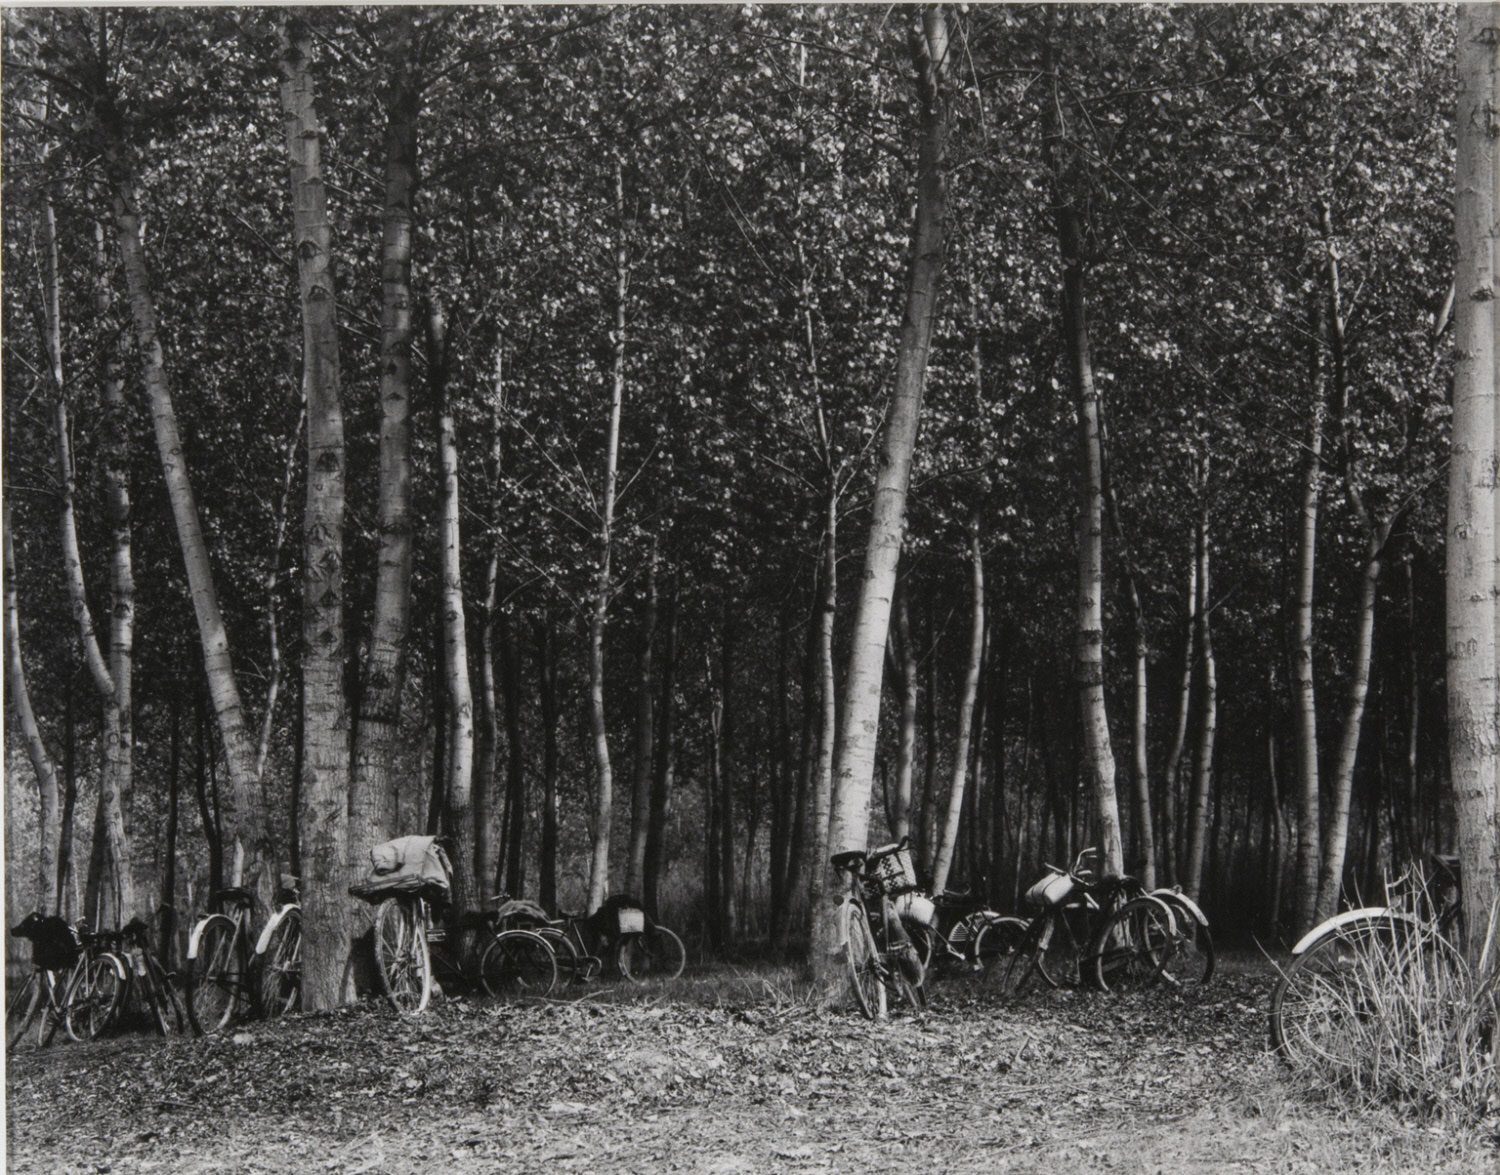 Workers' Bicycles, The Po, Luzzara